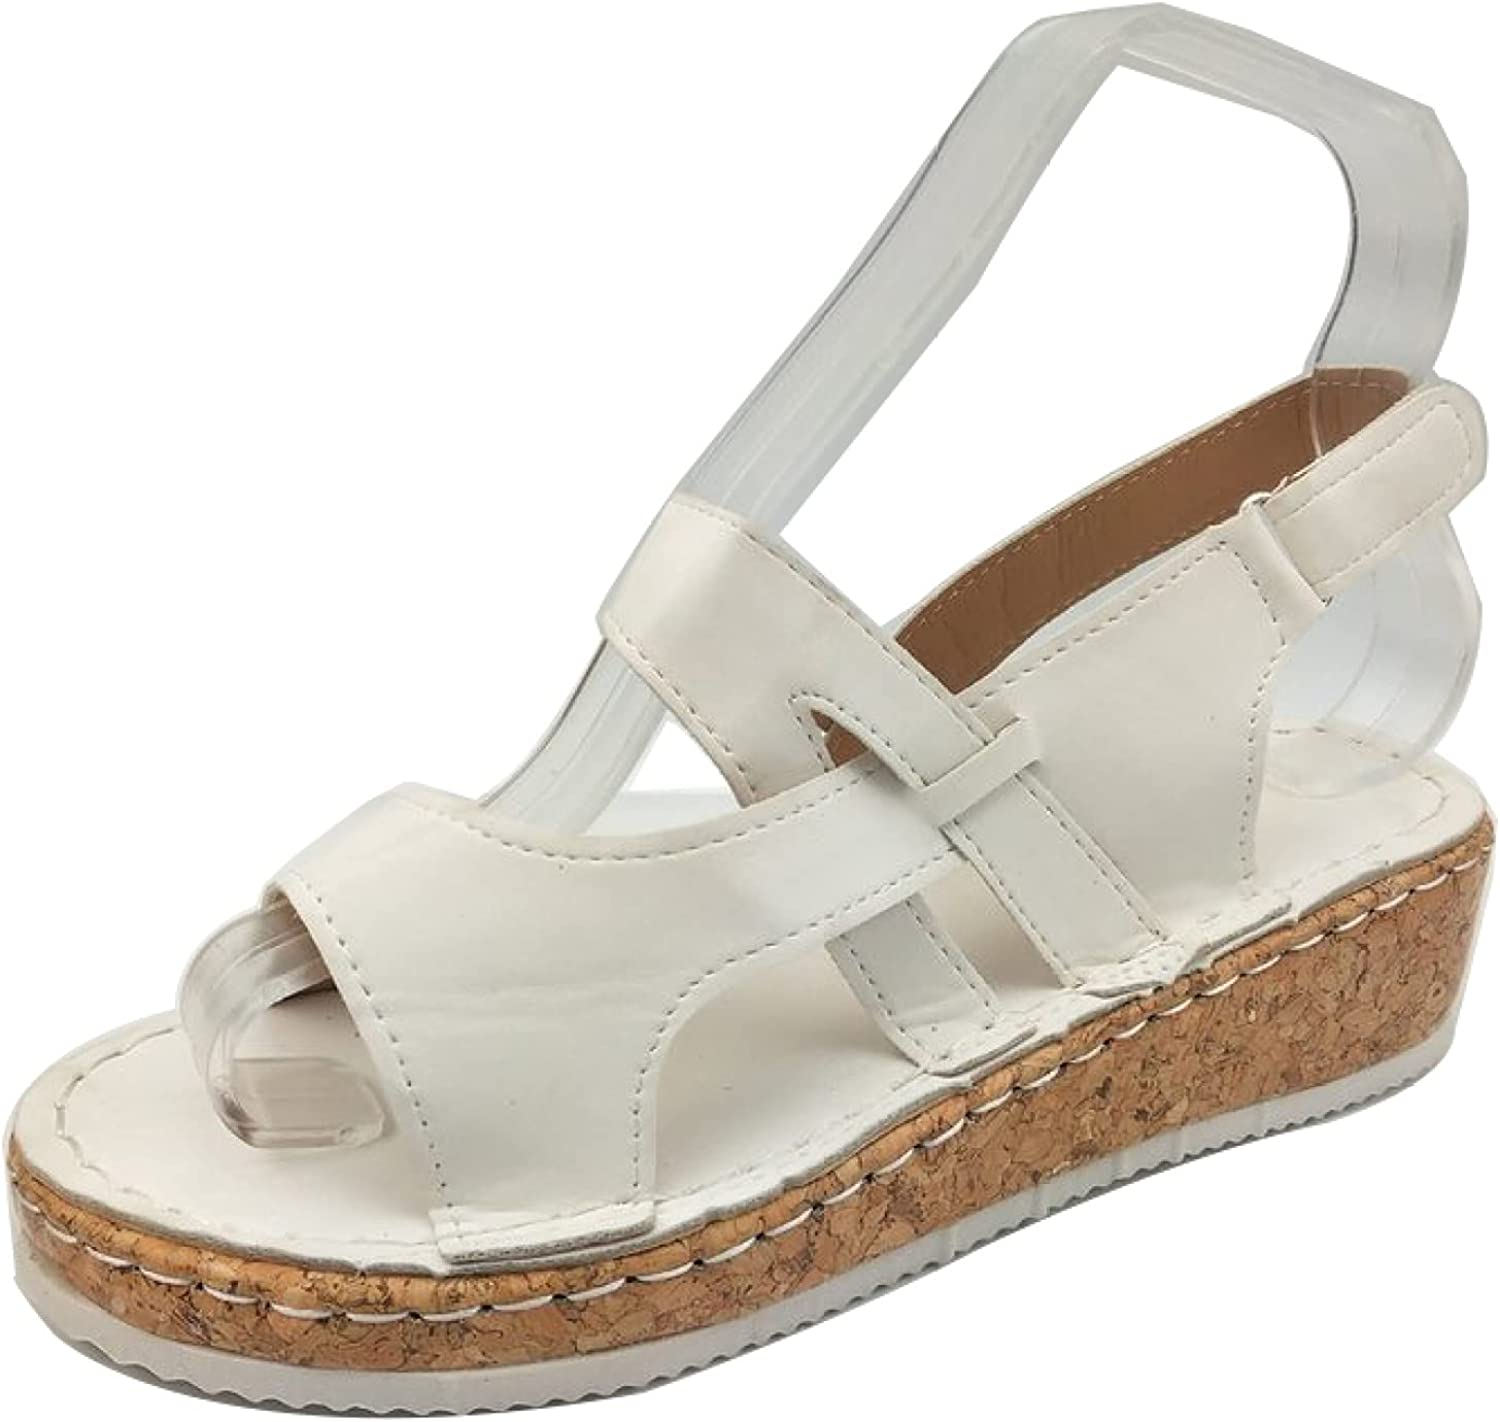 Women Casual Solid Color Wedges Sandals Open Hook Jacksonville Mall Tulsa Mall Loop Toe A and